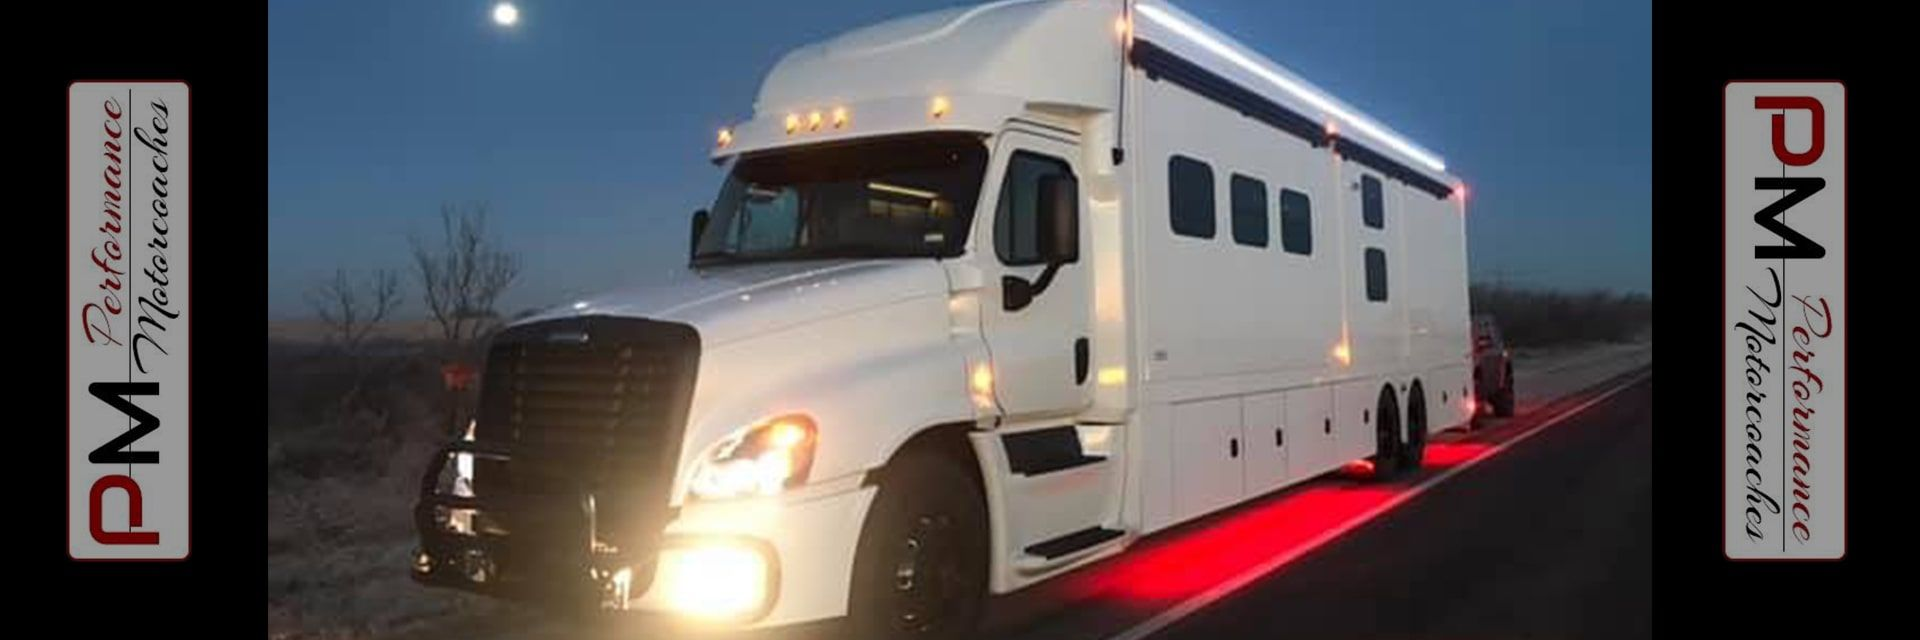 Performance Motorcoaches: RVs, Motorhomes, Trailers & ATVs in Texas